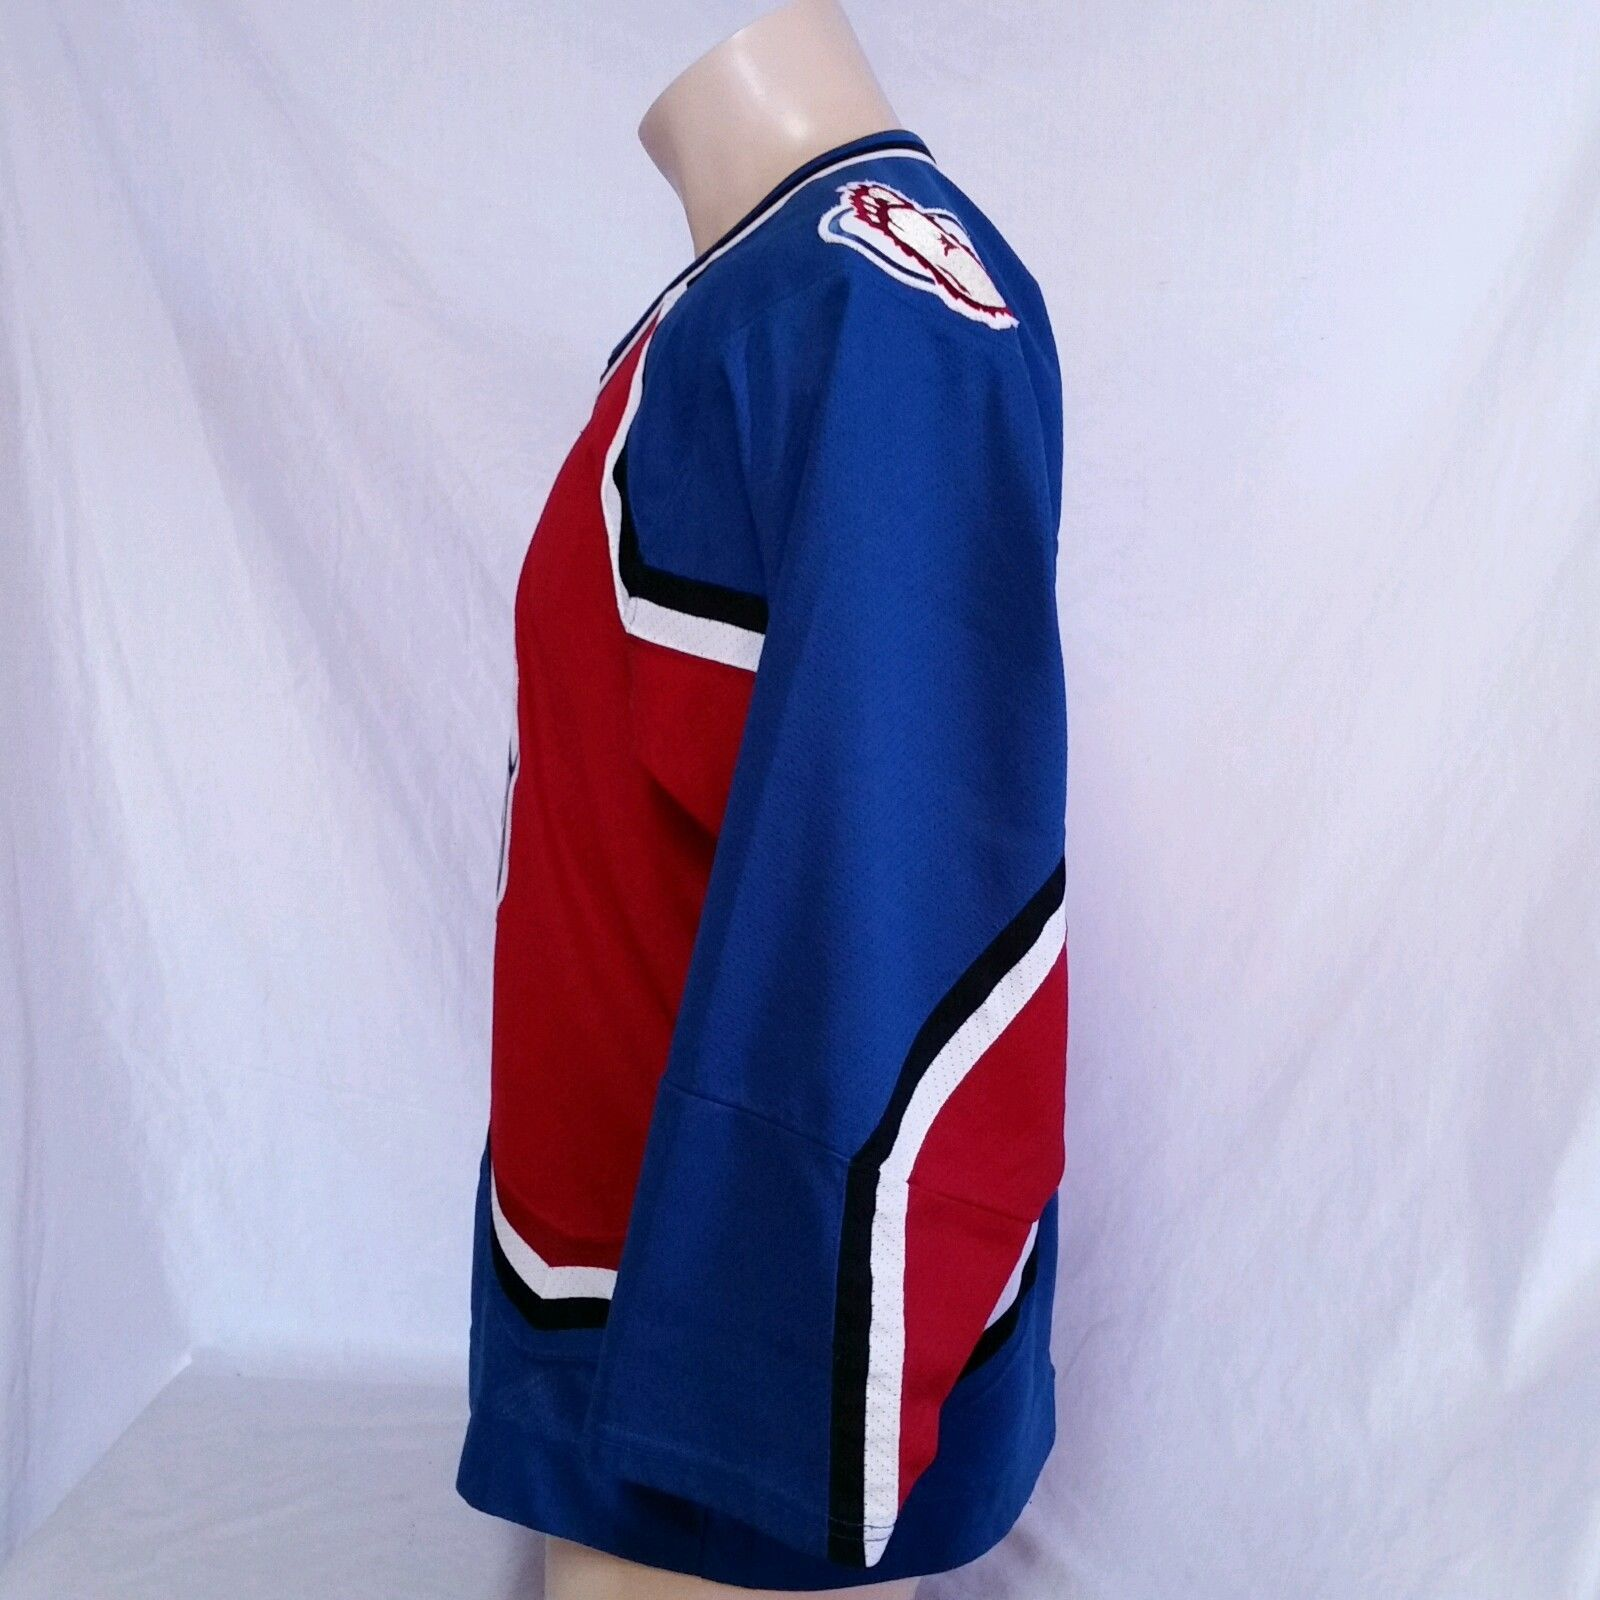 Colorado Avalanche CCM Hockey Jersey NHL Throwback VTG Authentic Mens Size Large image 3